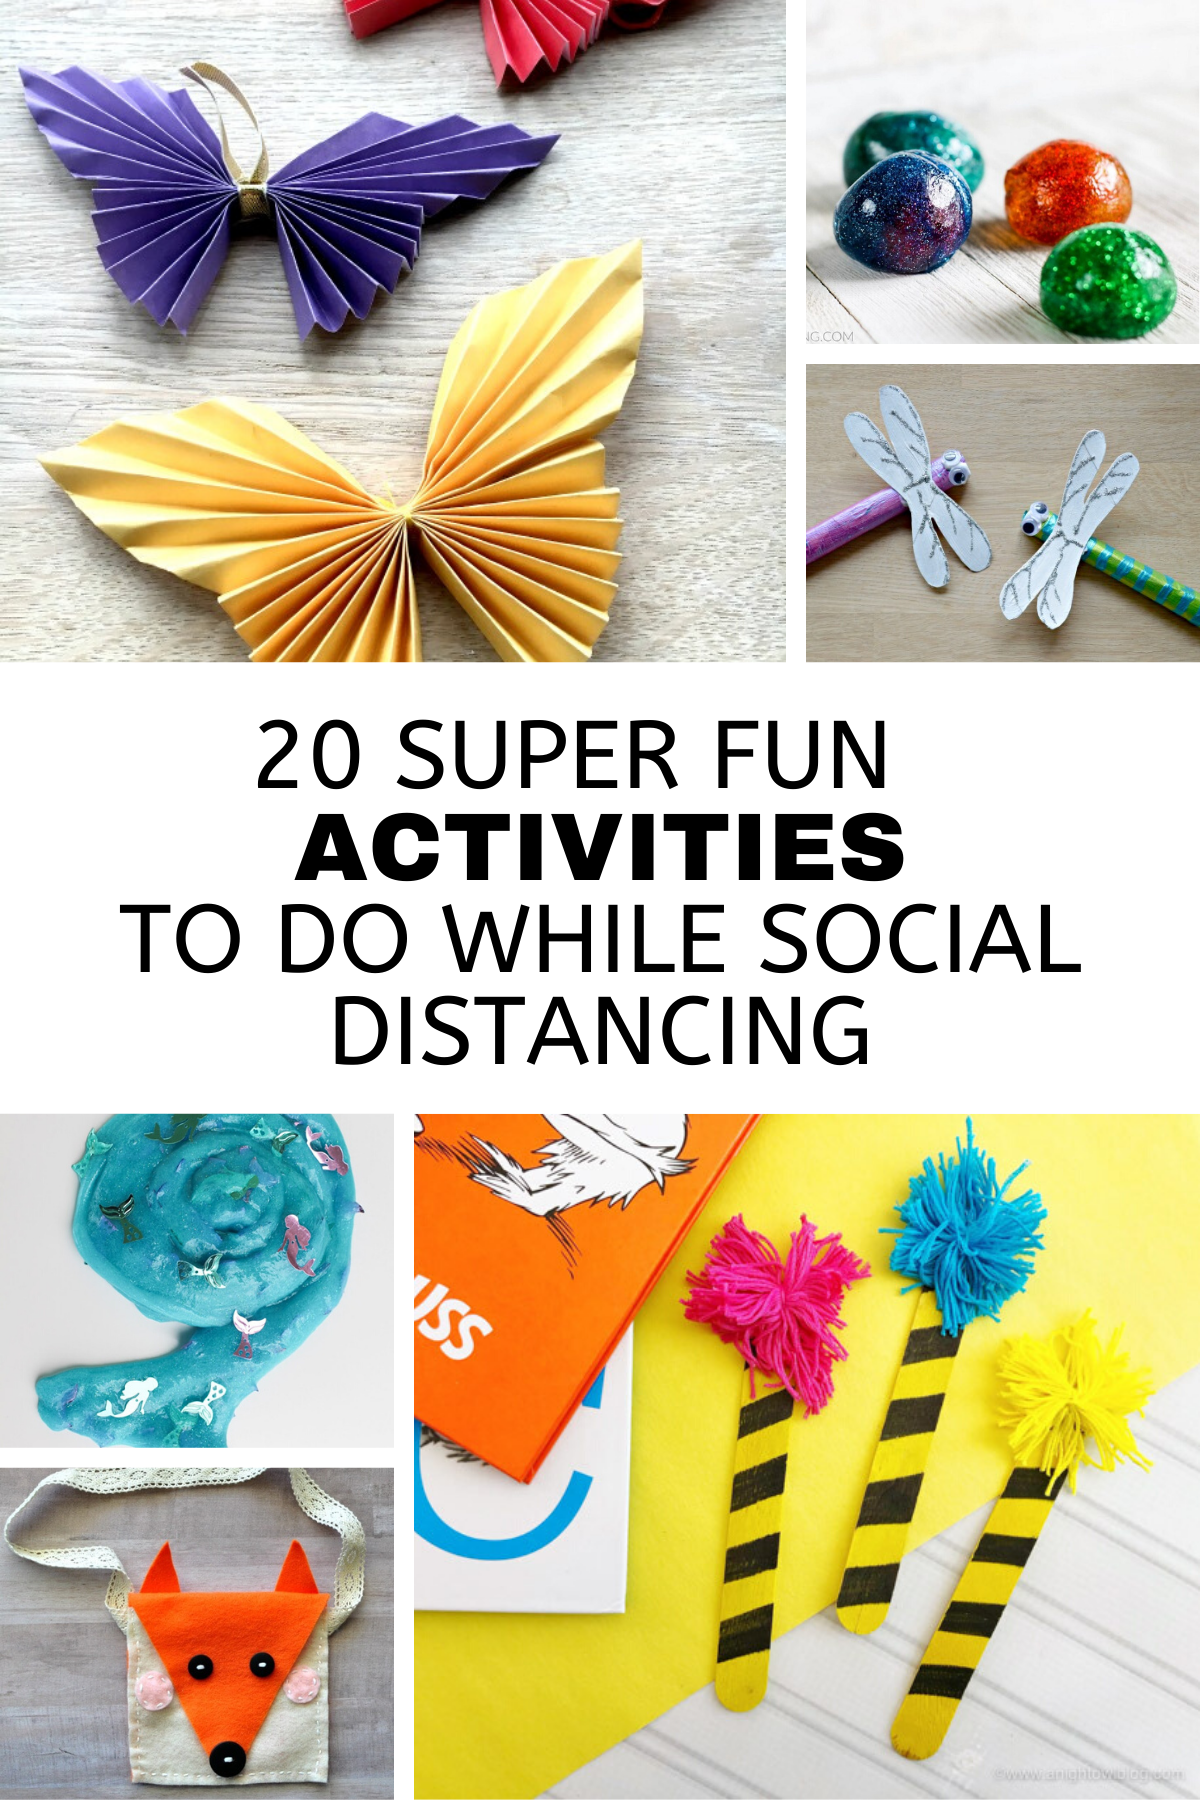 20 Super Fun Activities for Kids to Do While Social Distancing (1)